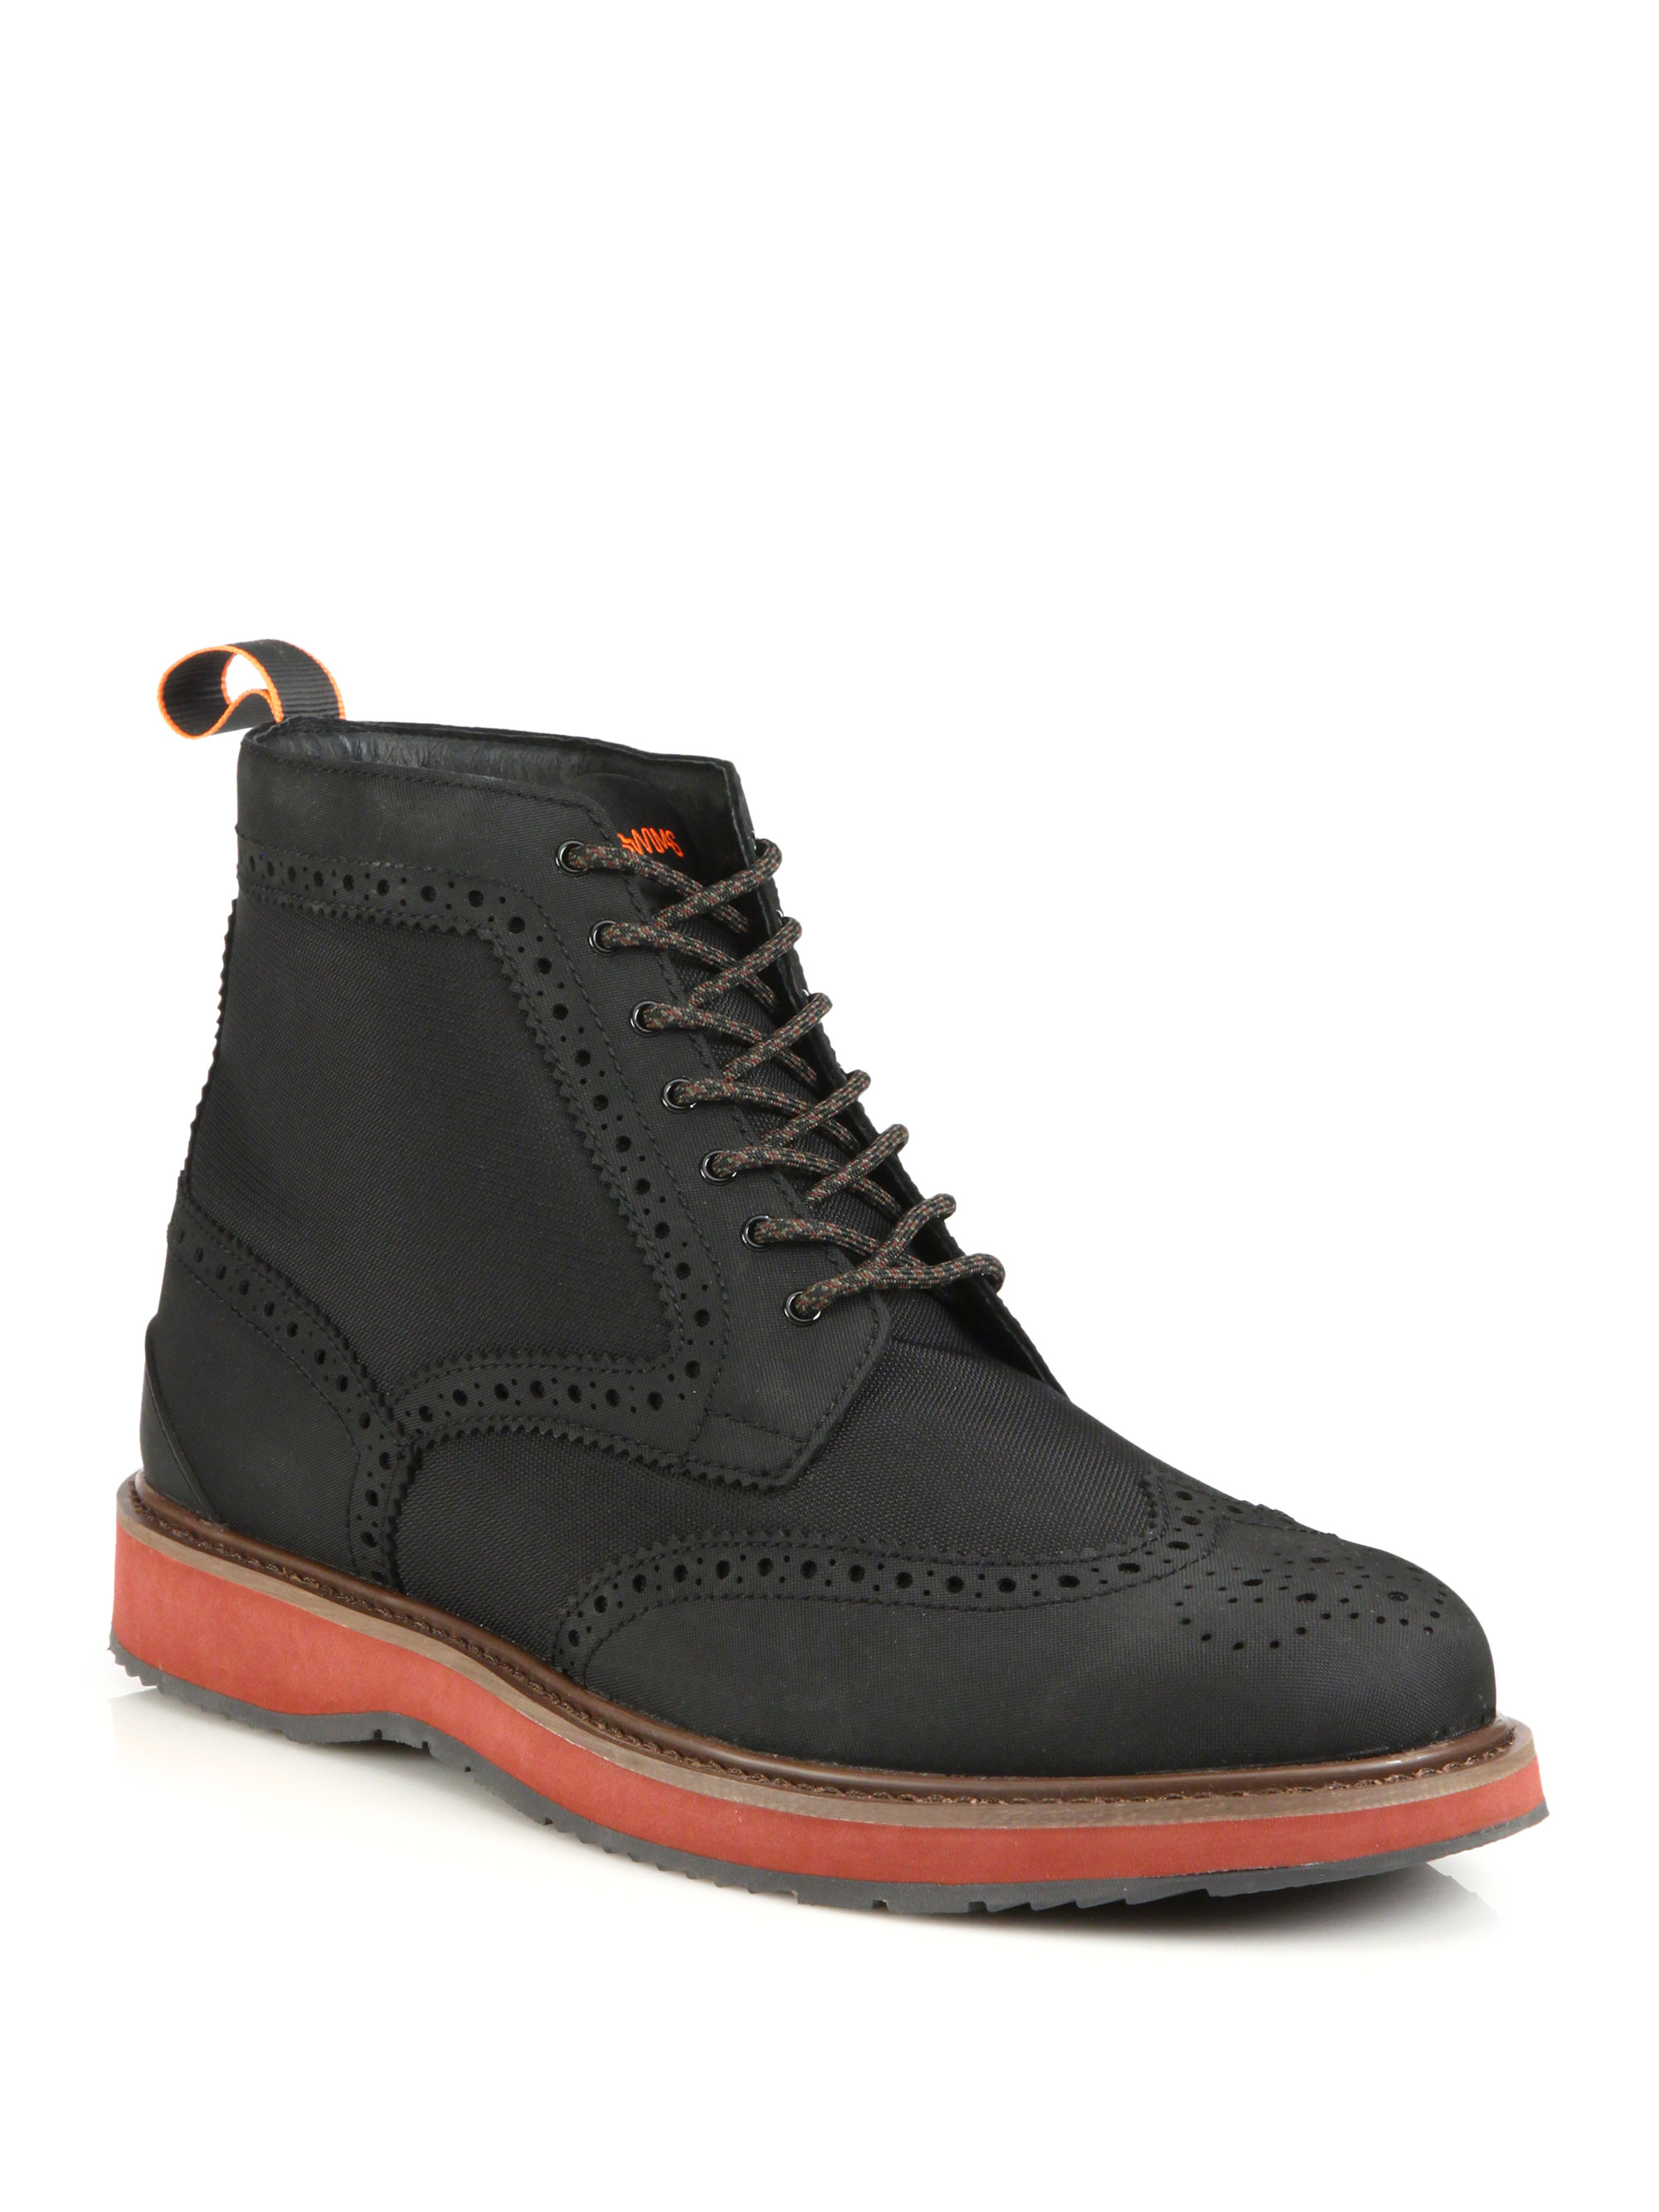 Swims Barry Brogue Lace Up Boots In Black For Men Lyst